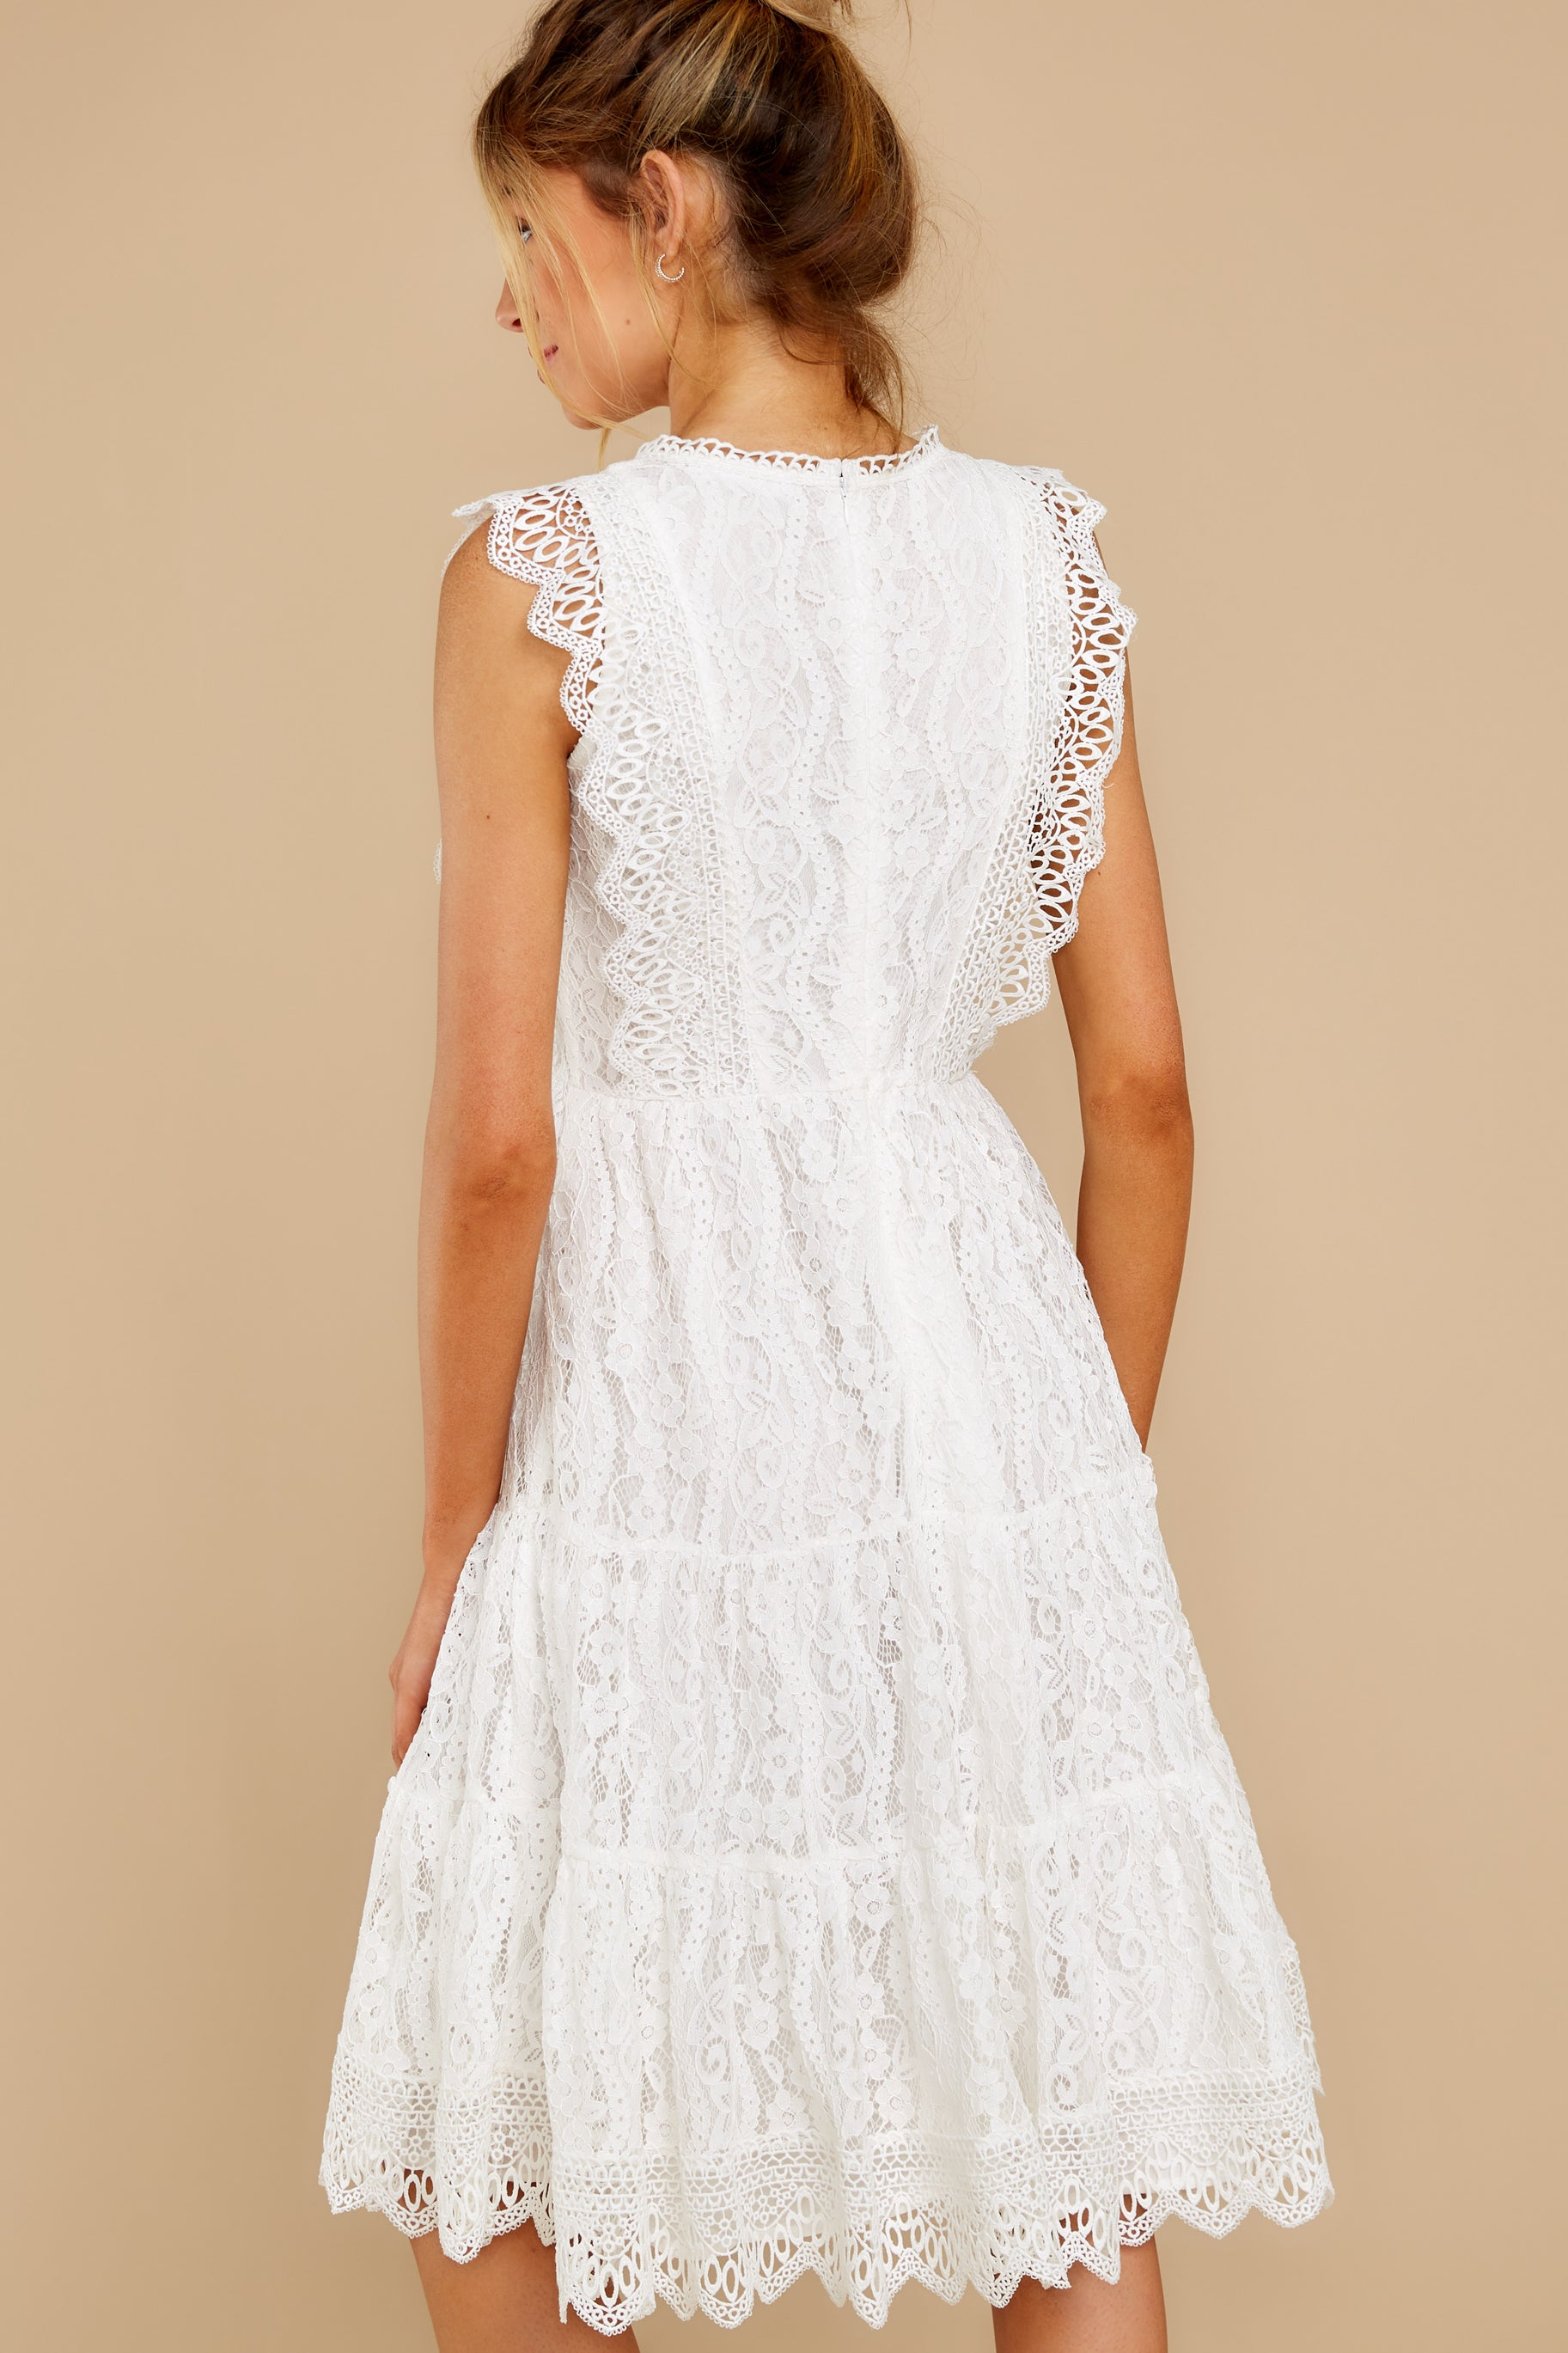 8 Simply Amazing White Lace Dress at reddress.com